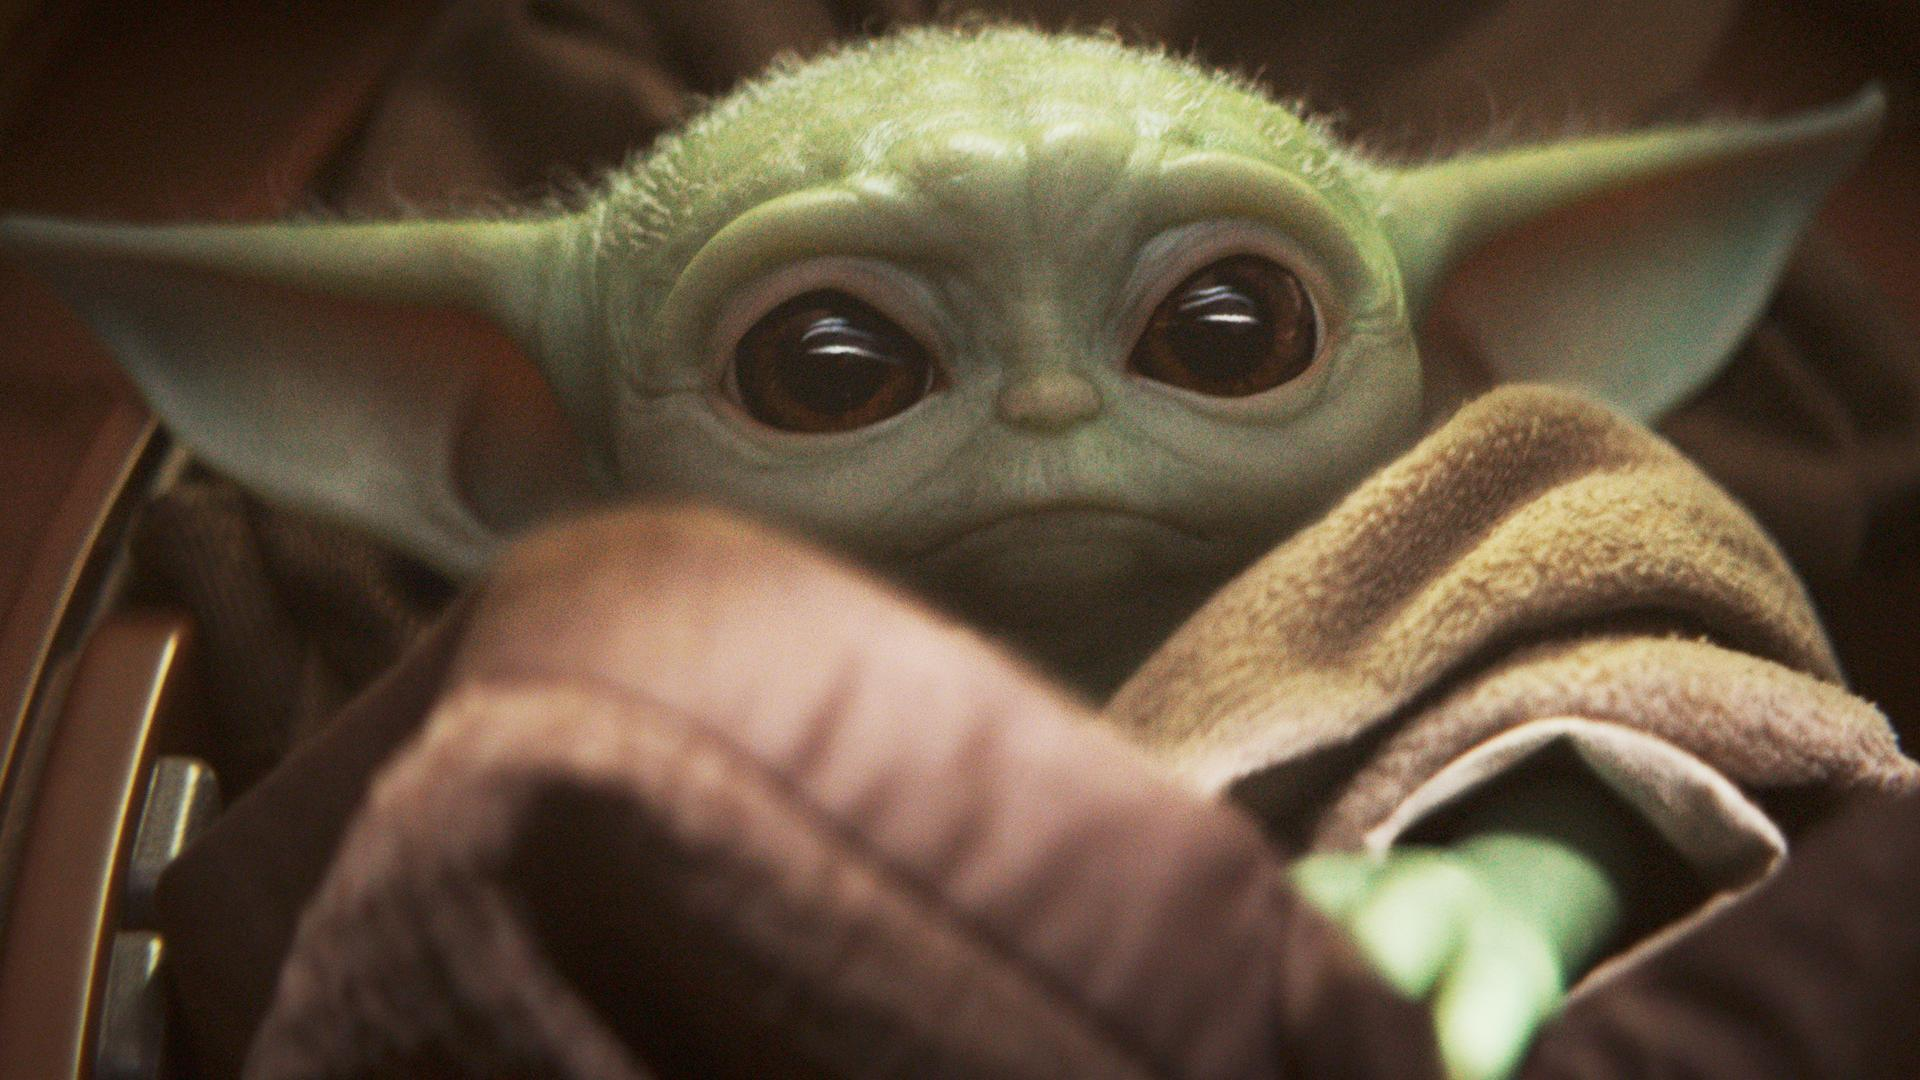 How to Fix a Slow Computer With Baby Yoda Wallpaper?